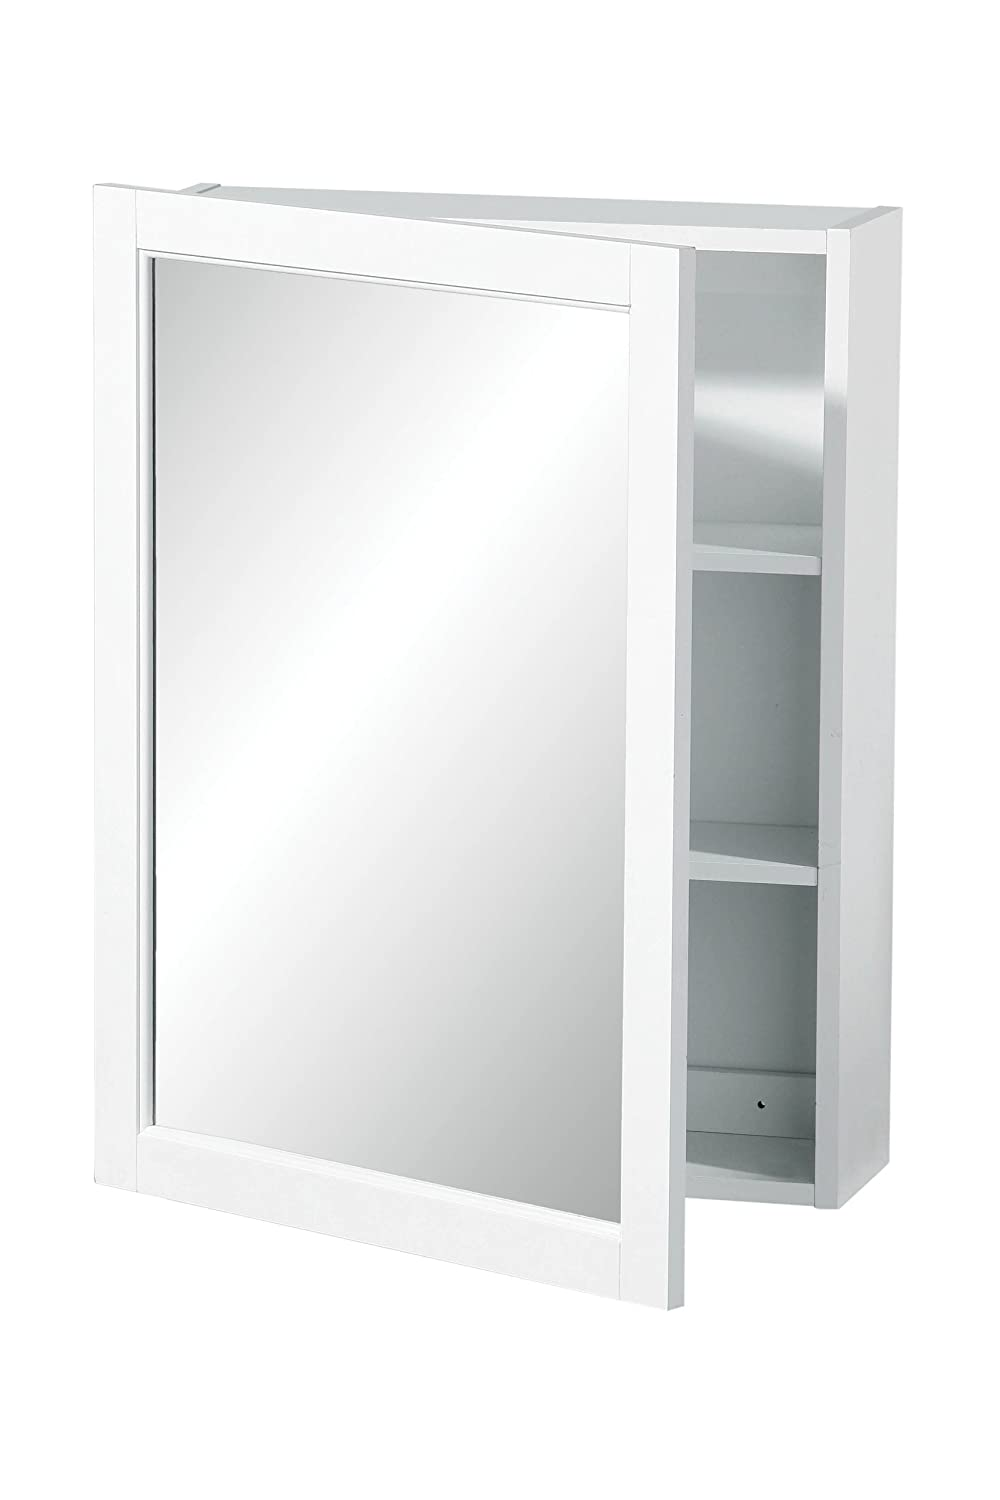 Beau Premier Housewares Wall Cabinet With Mirrored Single Door, 66 X 51 X 16 Cm    White: Amazon.co.uk: Kitchen U0026 Home